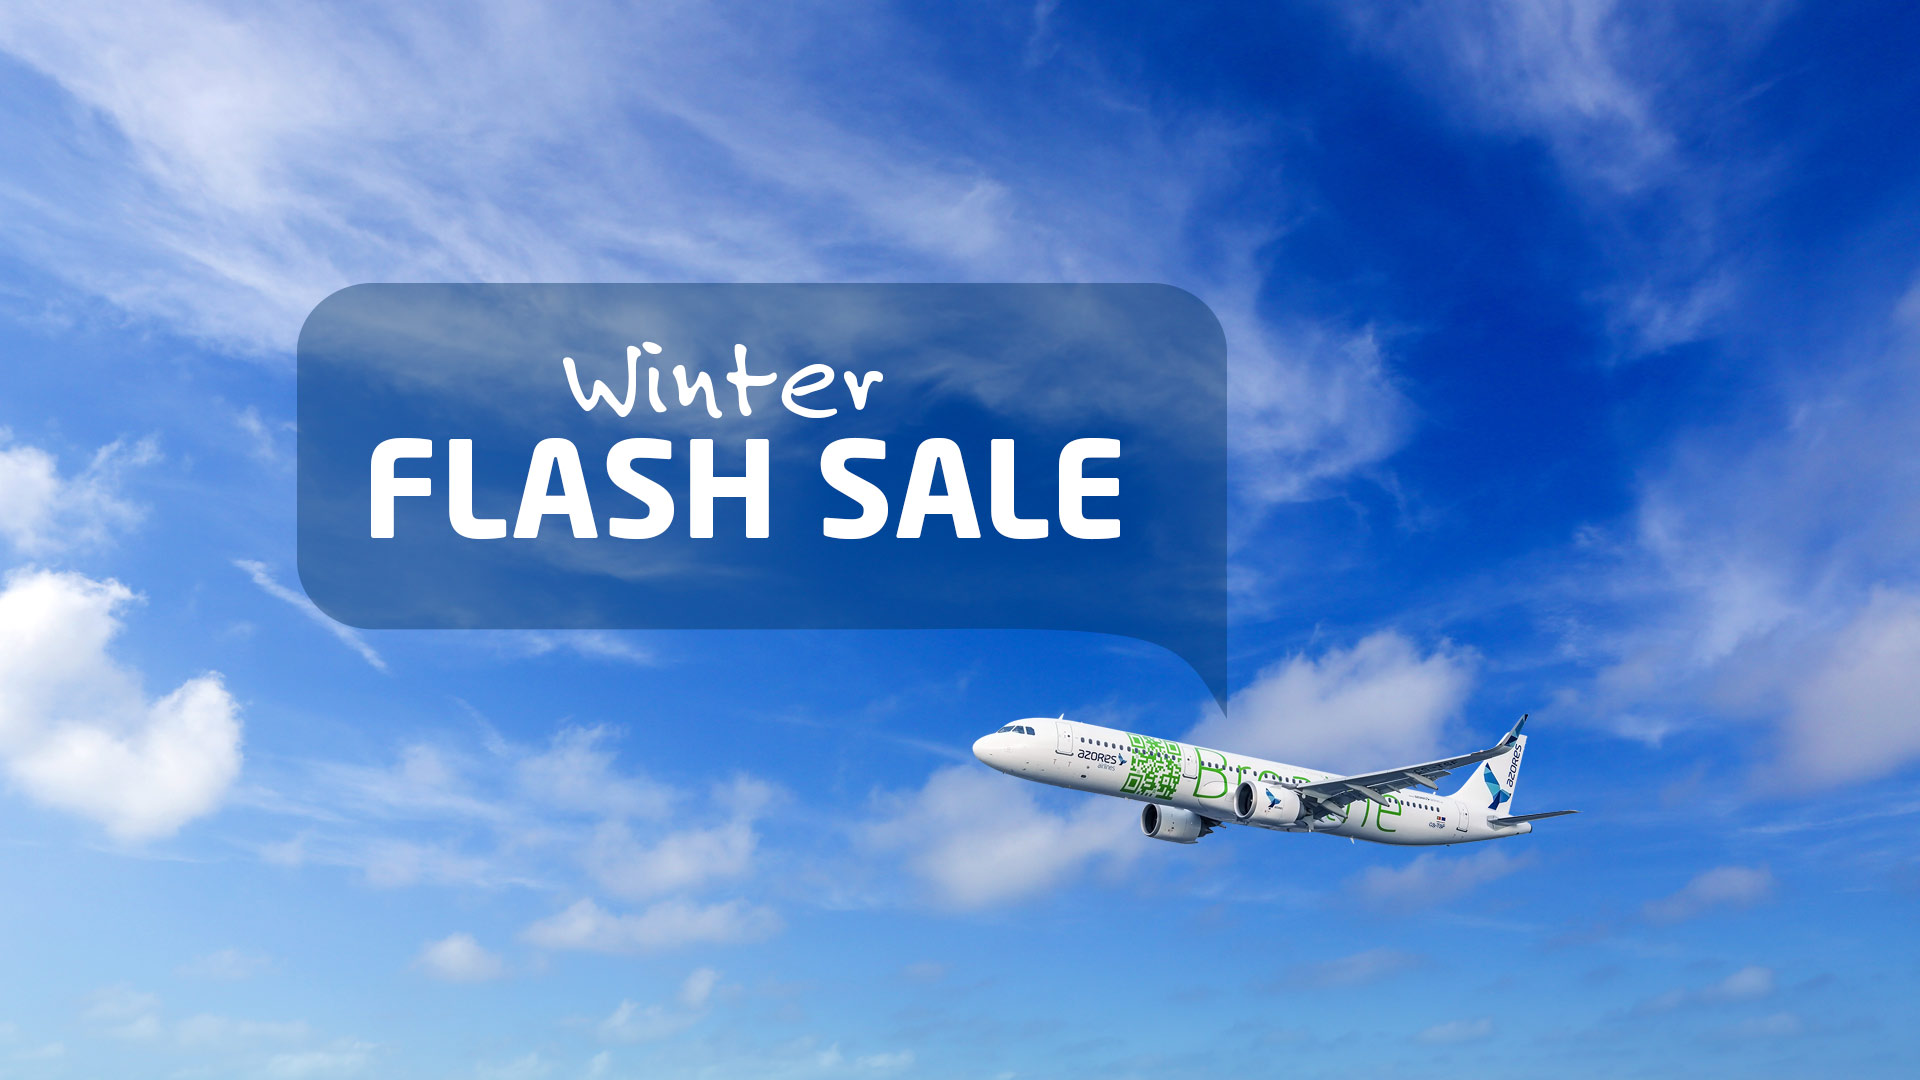 Winter Flash Sale